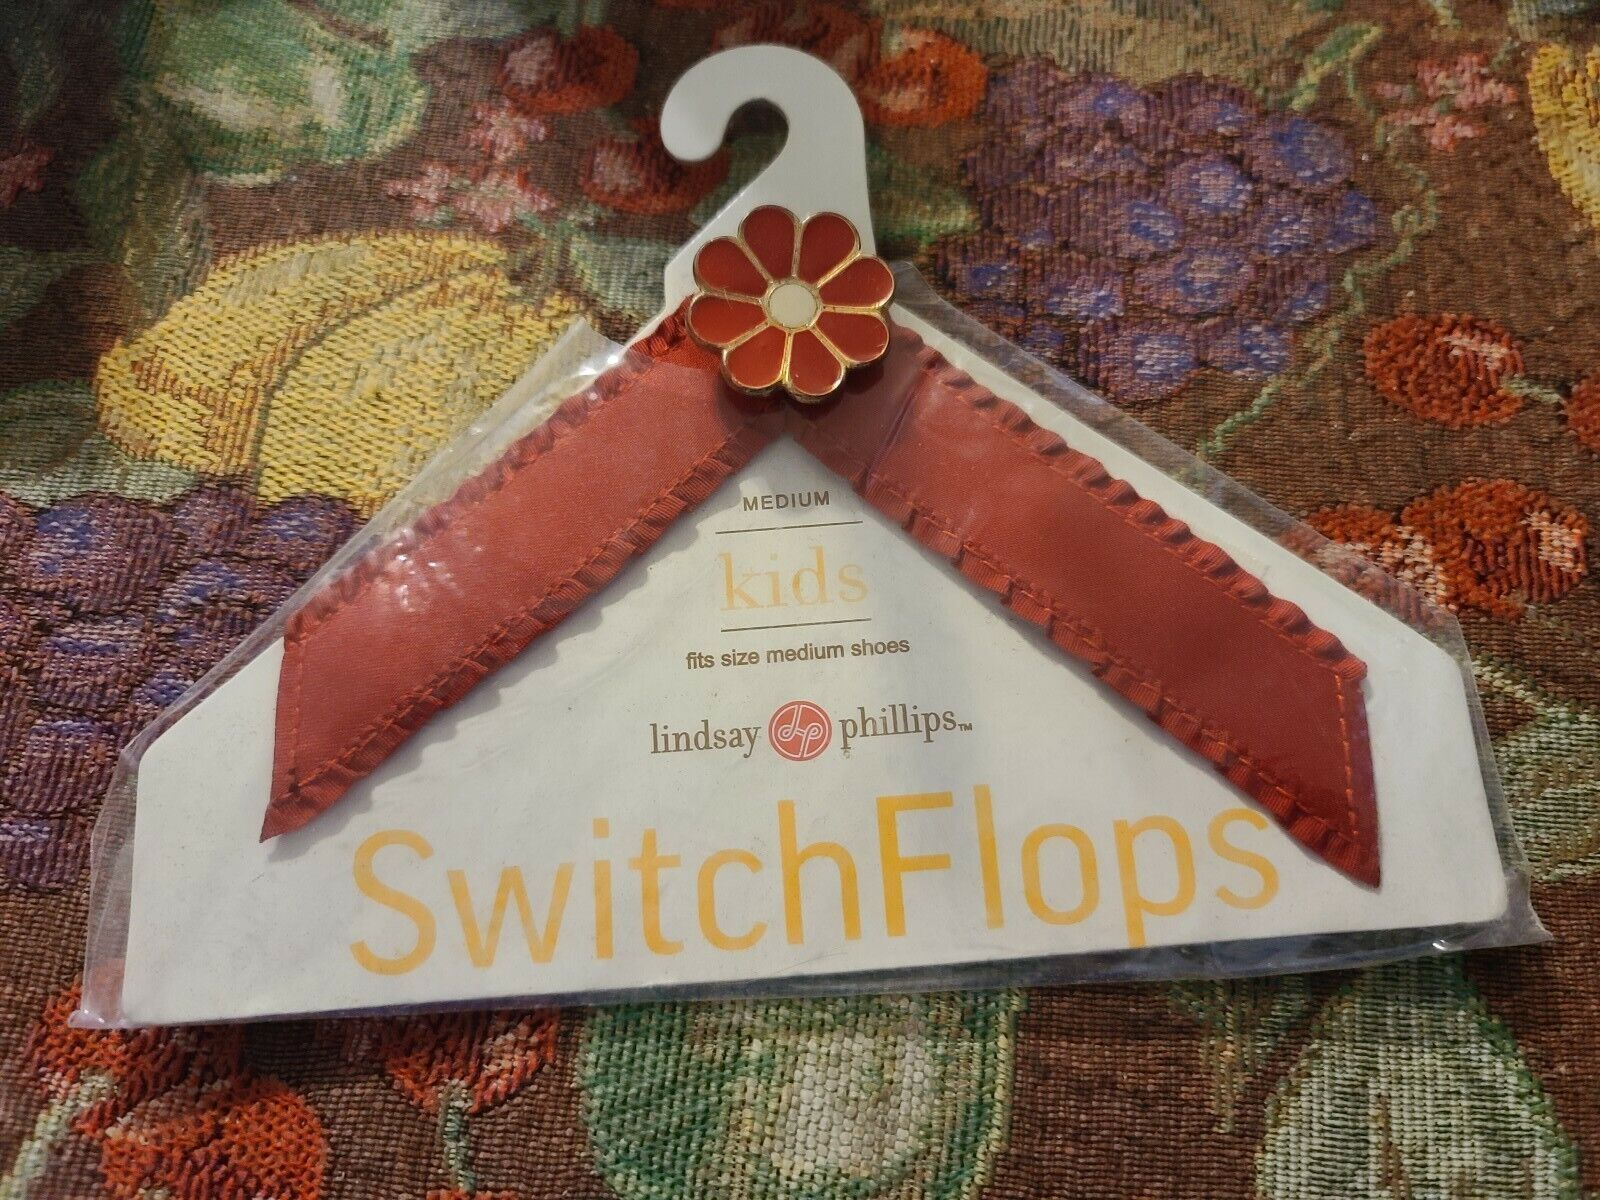 Lindsay Phillips Switchflops Straps Maroon With Maroon Flower. Size Medium